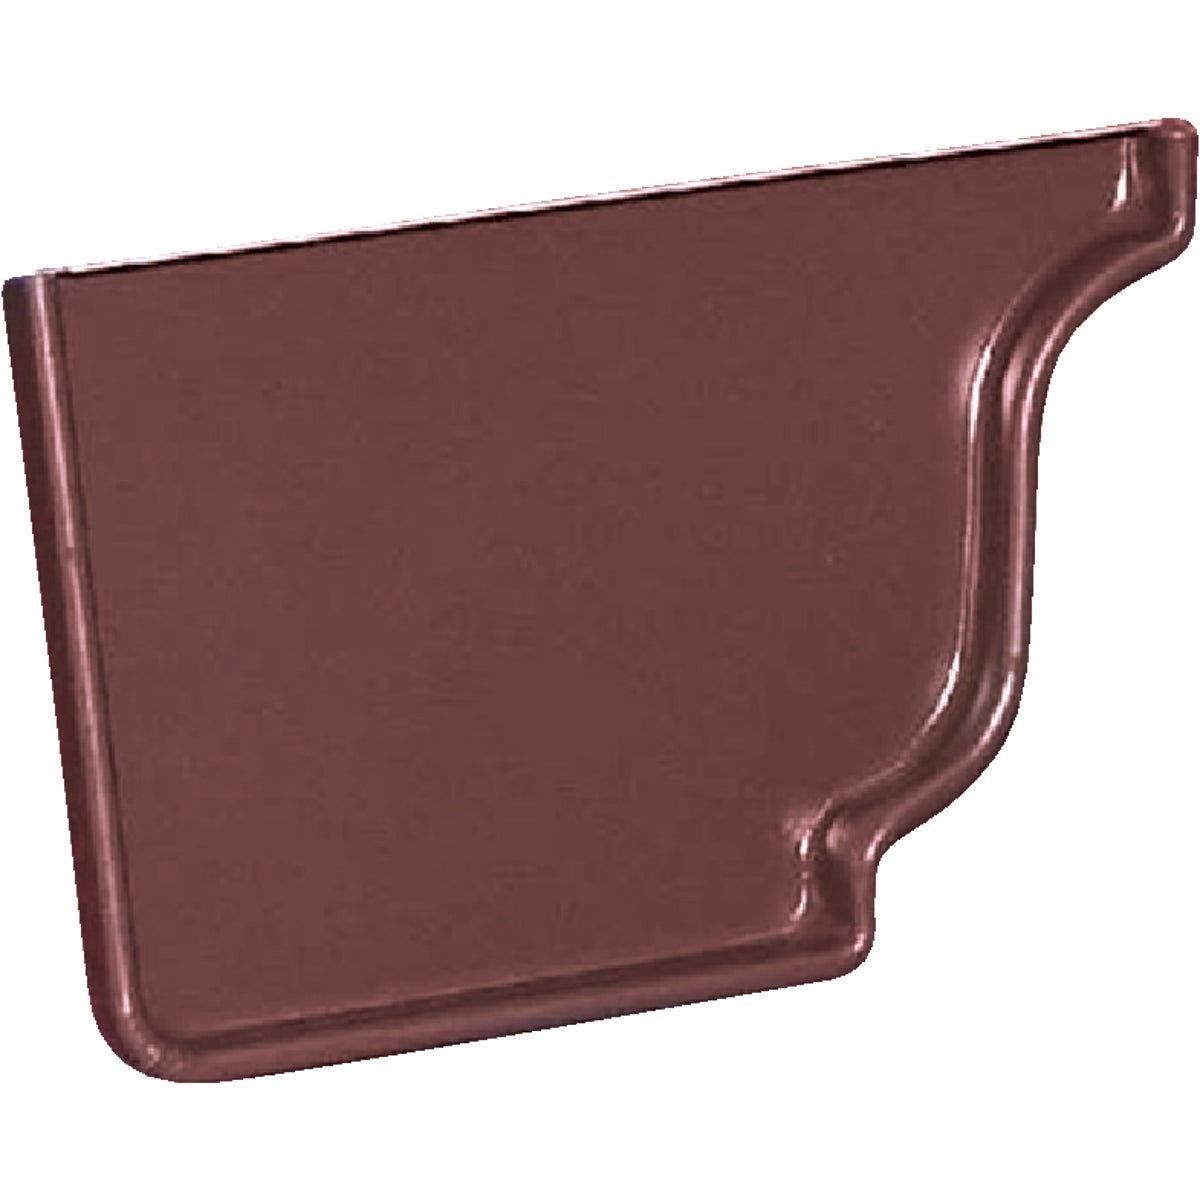 BROWN LEFT END CAP - 3320519 by Amerimax Home Prod